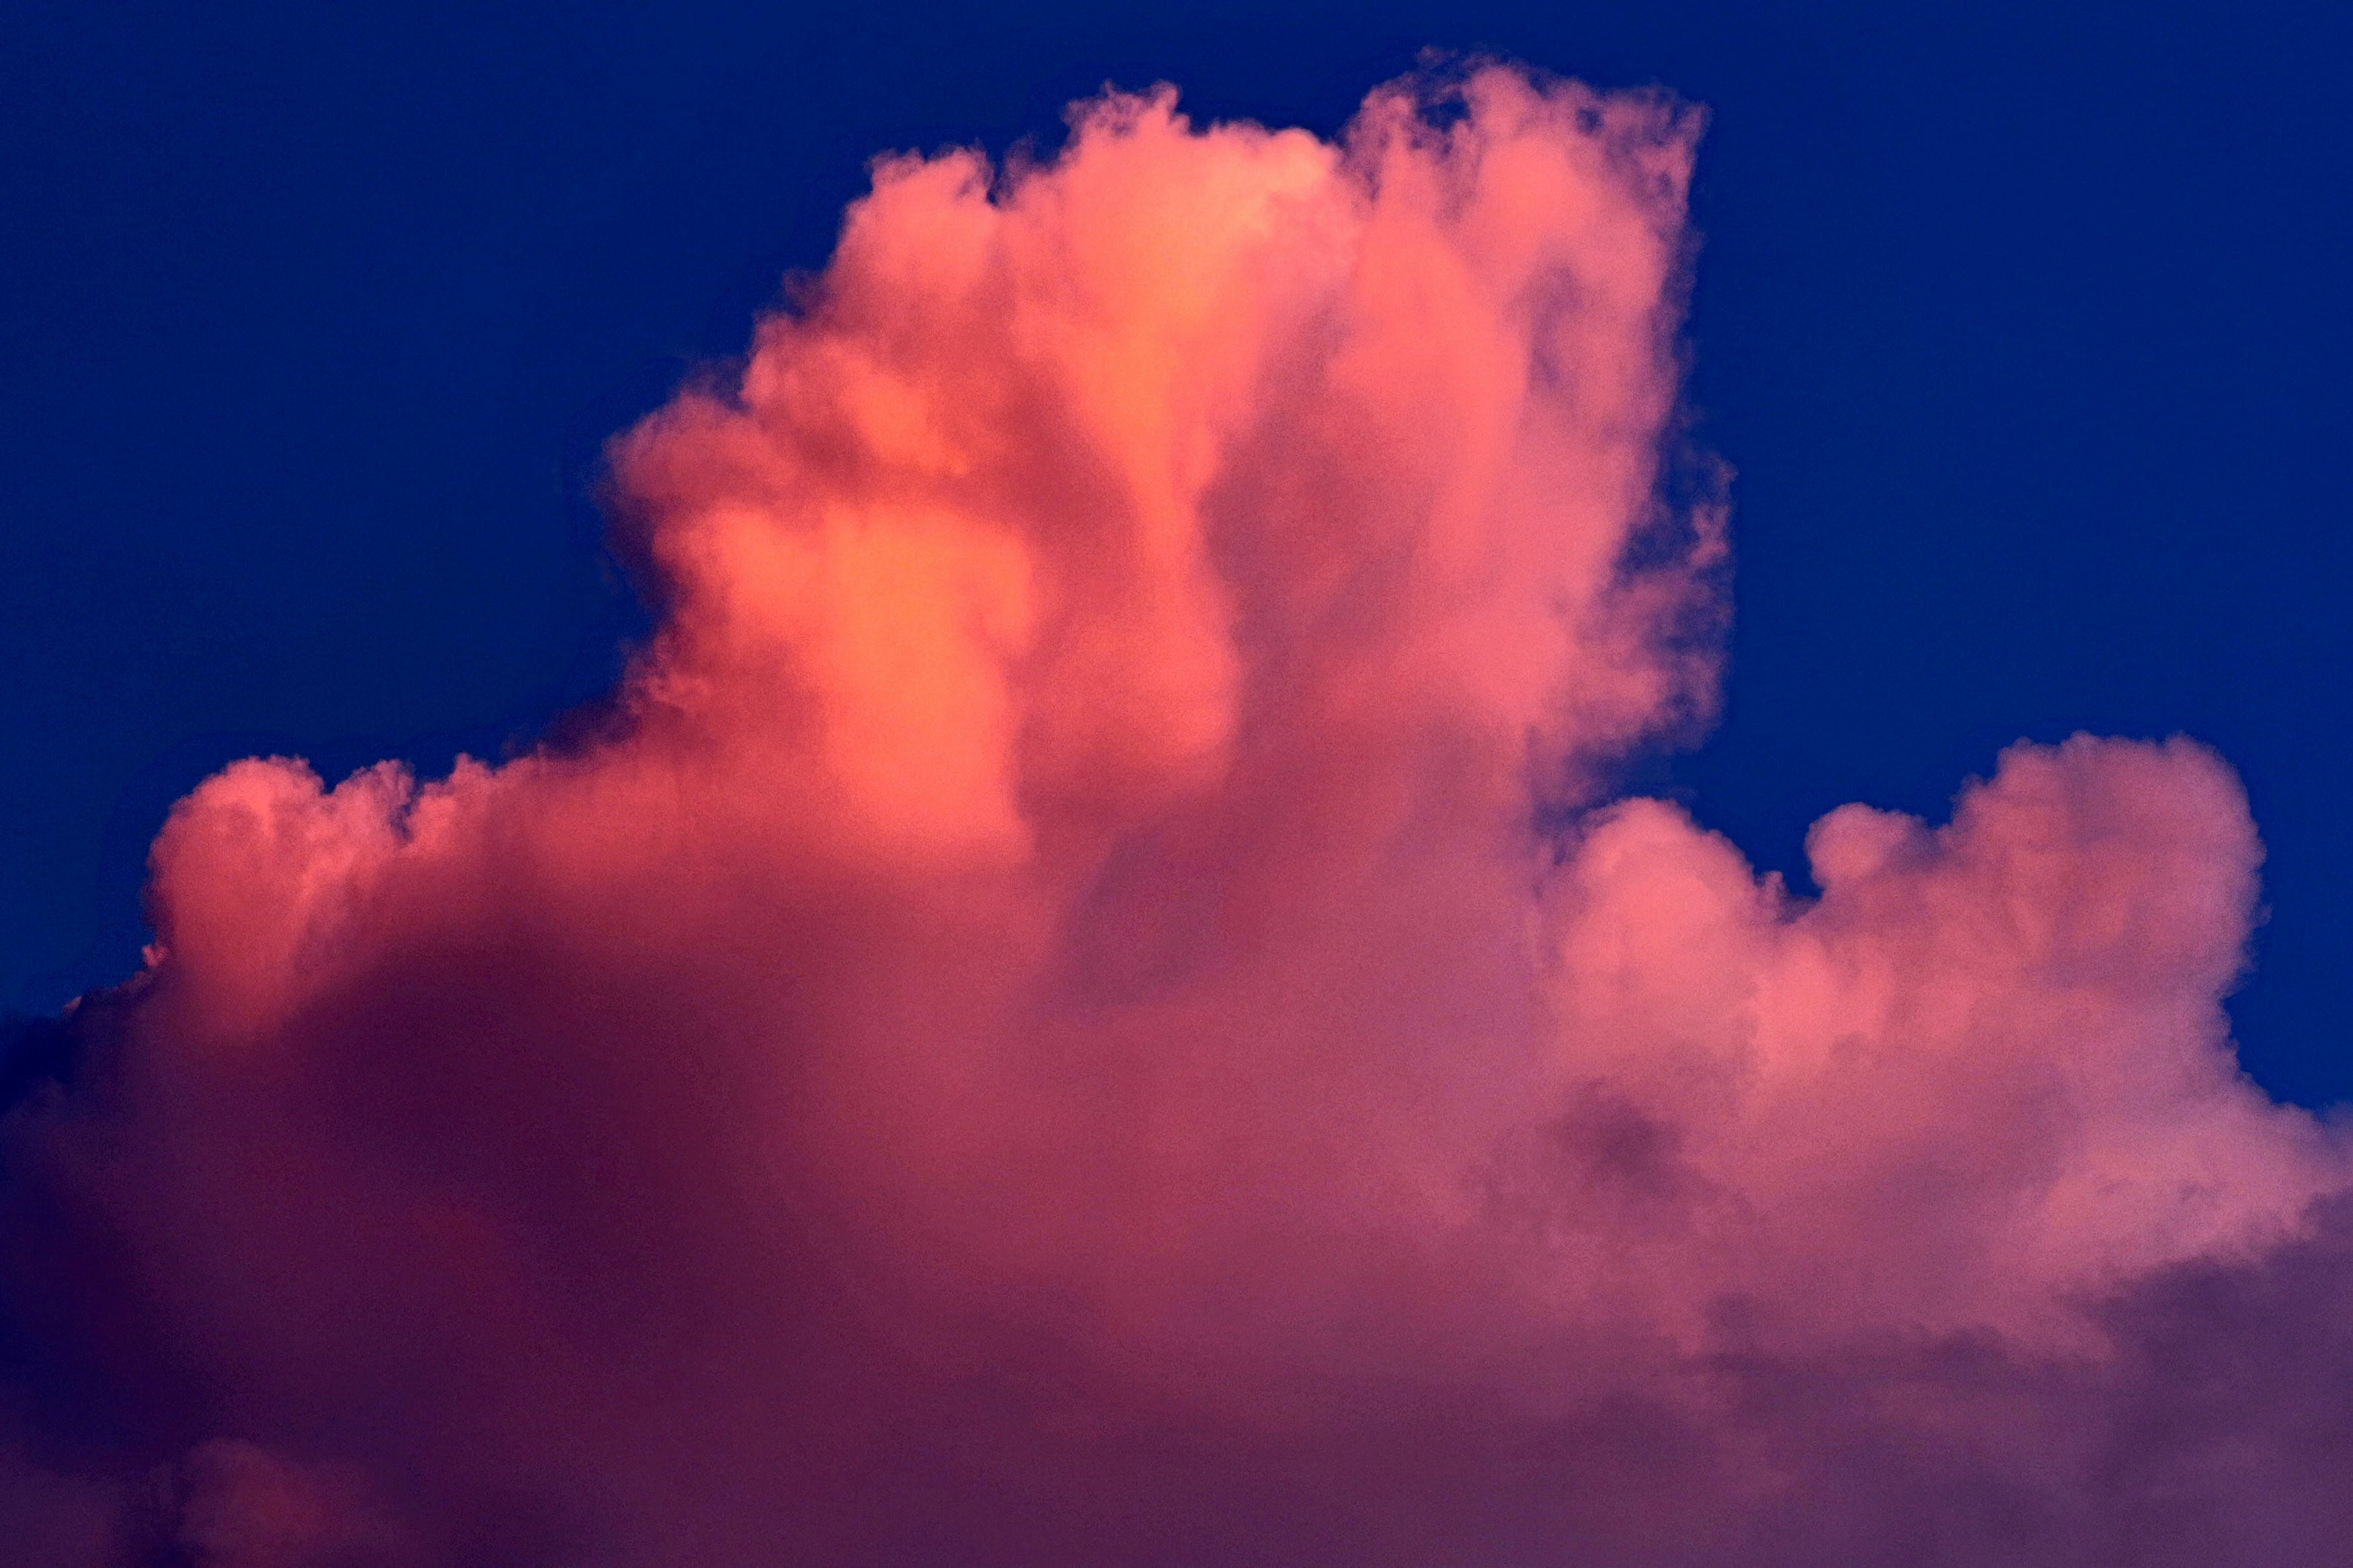 Free stock photo of nature, sky, clouds, cloud formation